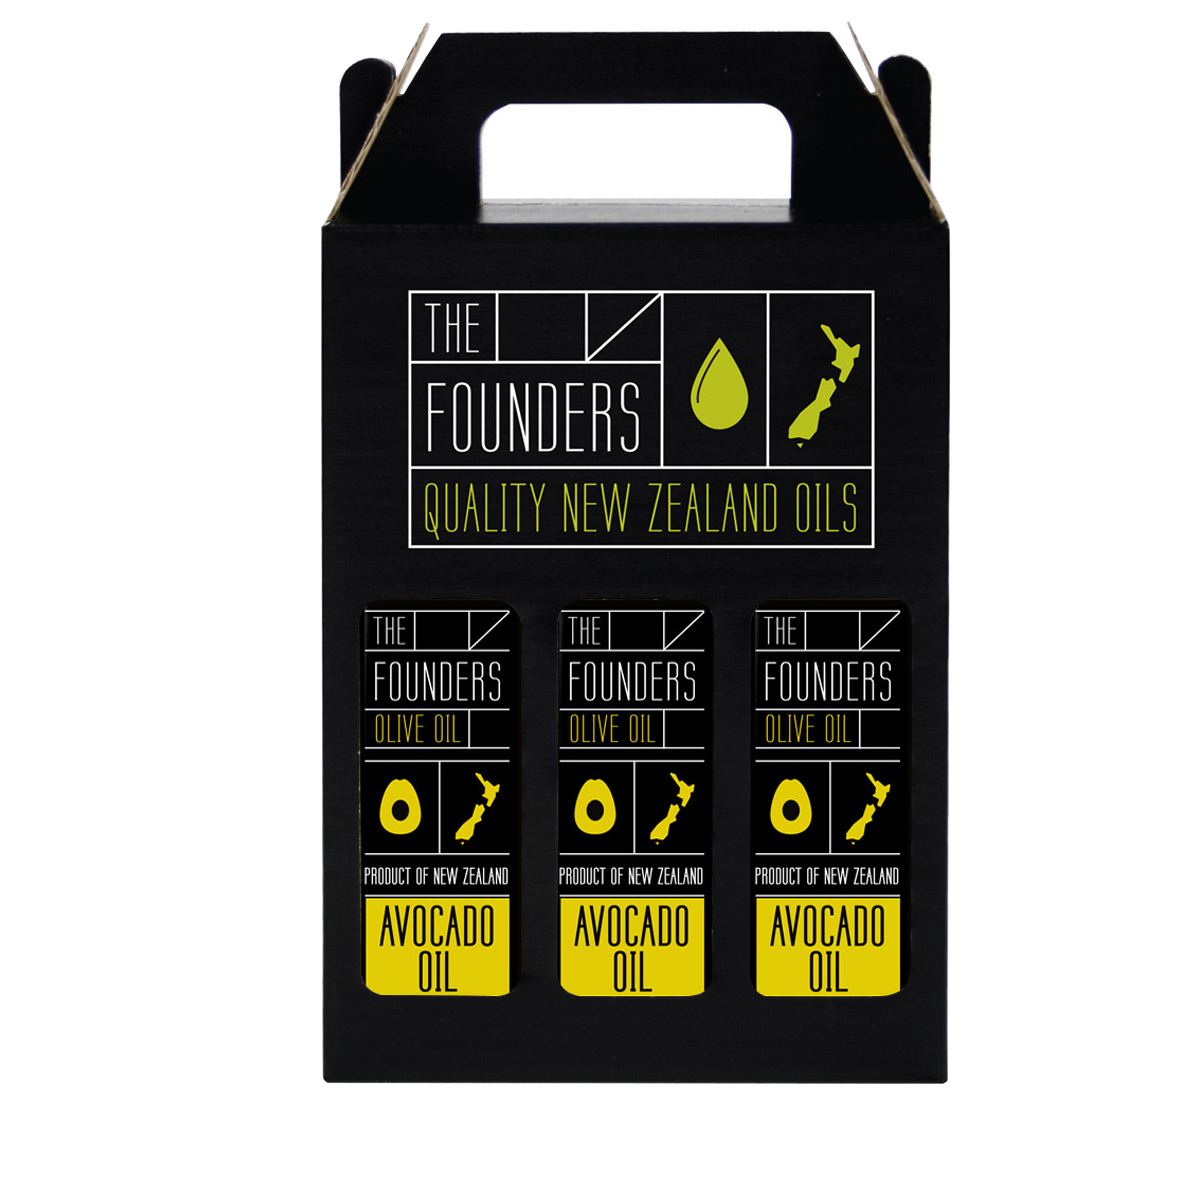 The-Founders-Olive-Oil-Giftpack-3x250ml-1200×1200-Avocado